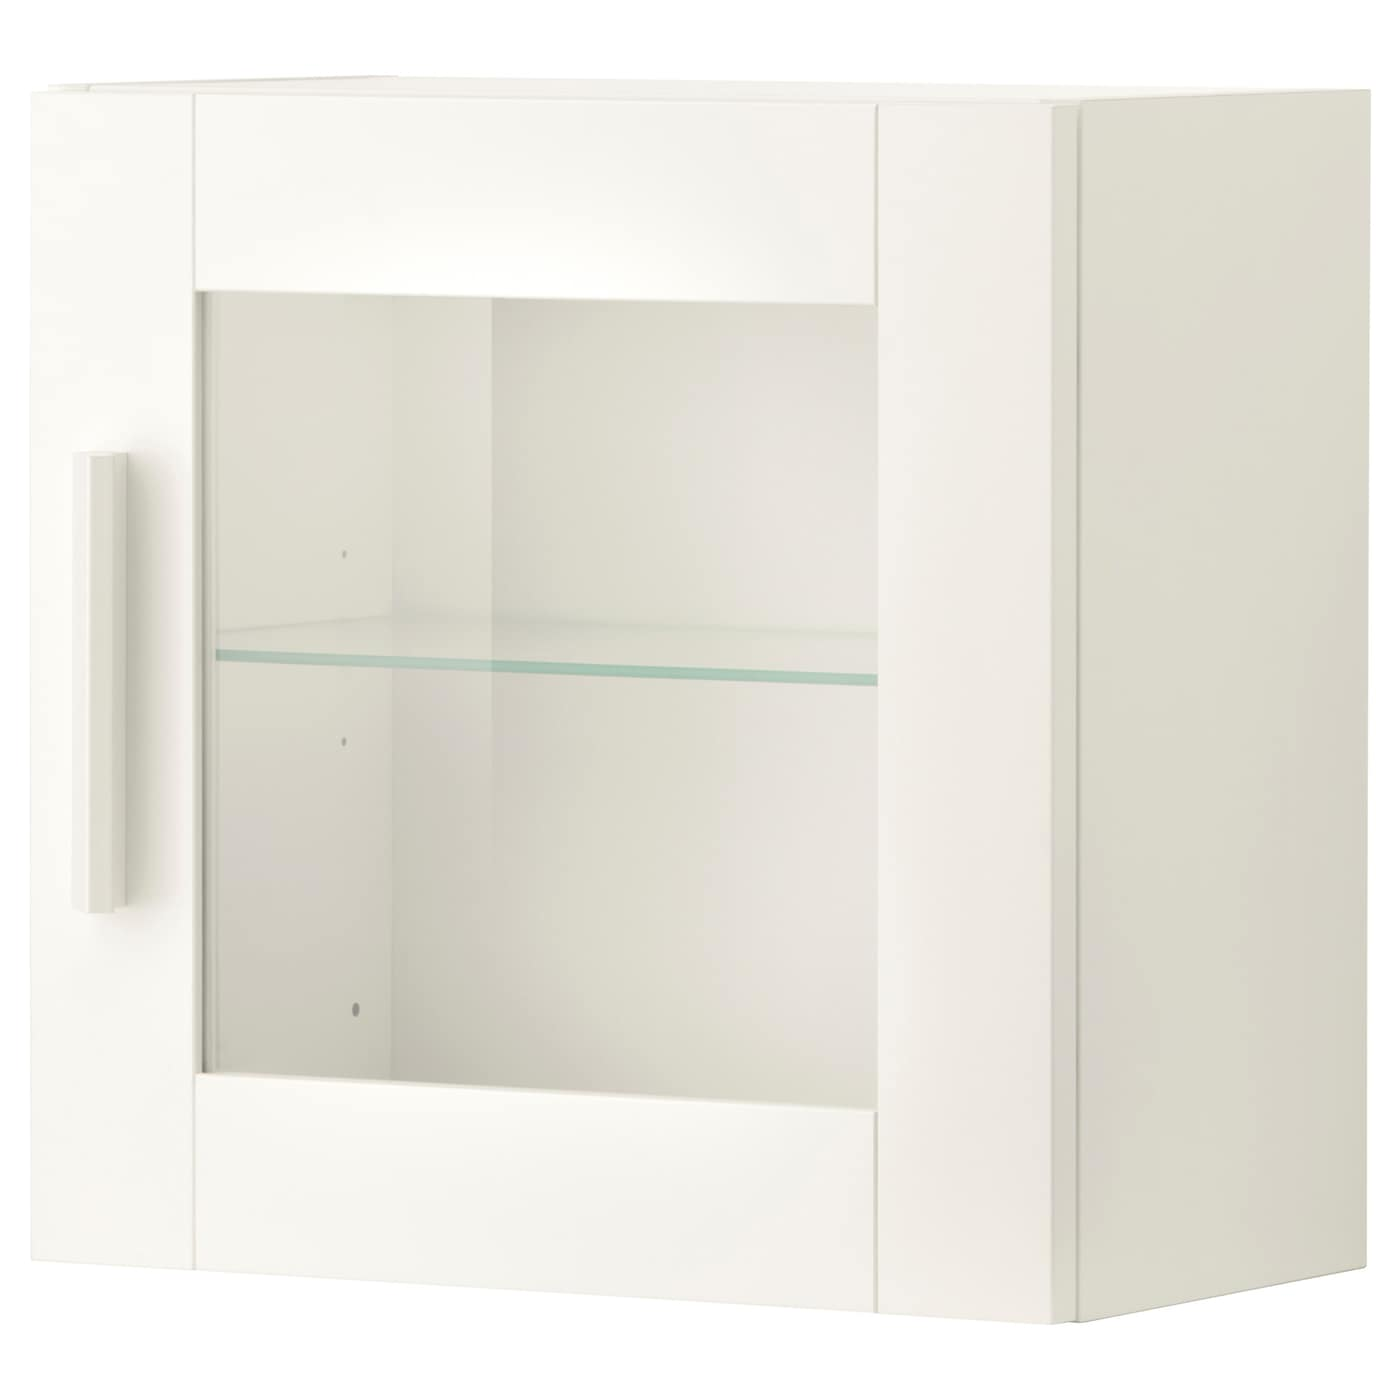 ikea wall cabinets brimnes wall cabinet with glass door white 39 x 39 cm ikea 11730